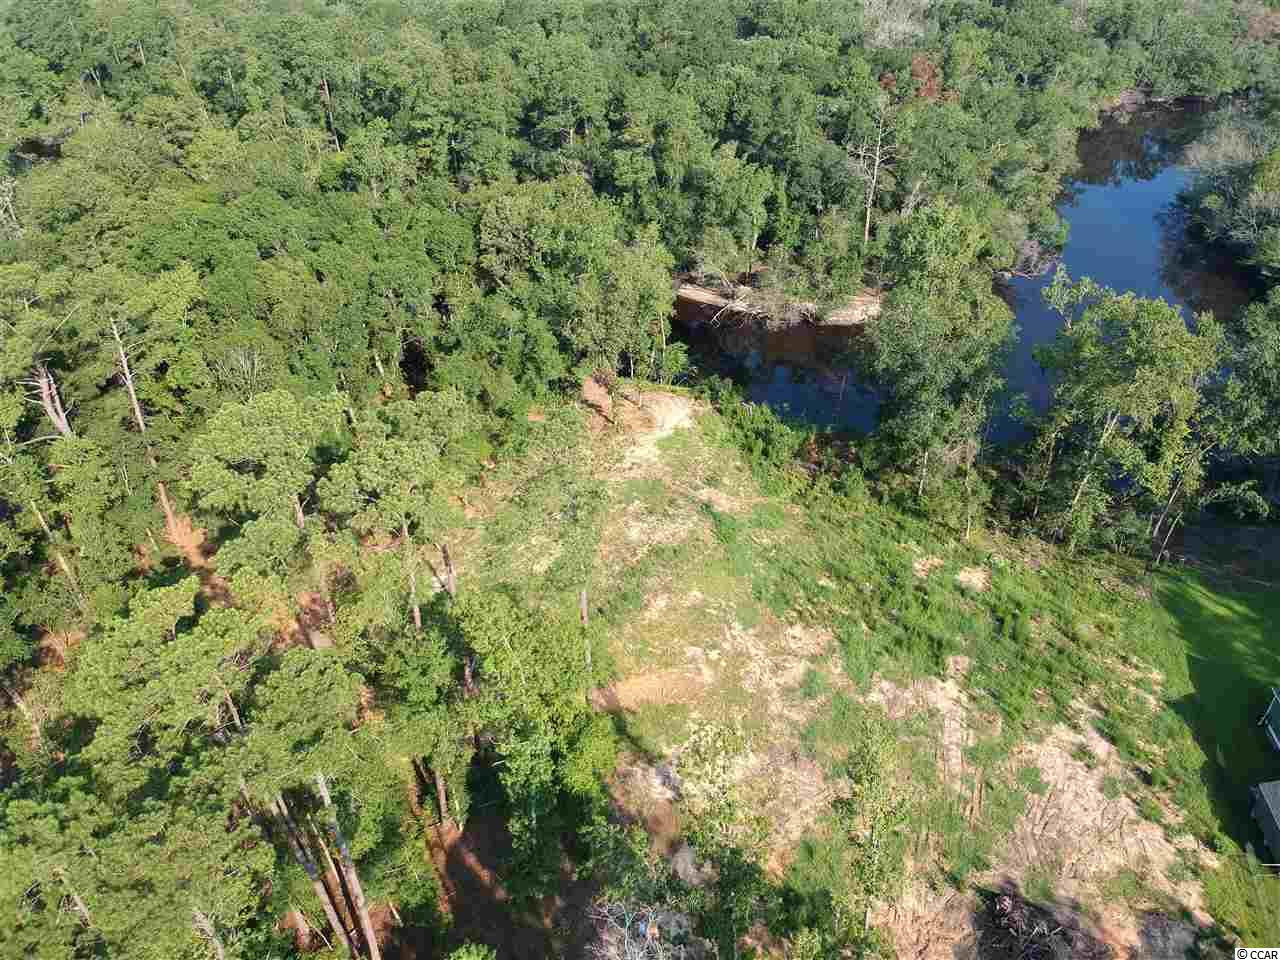 1.35 acre River Lot, Waccamaw River, no HOA or build time.  NOT IN A FLOOD ZONE, high and dry, cleared ready to build on. Have you ever imagined how great it would be to walk out your back door, jump into your boat and cruise off towards your favorite fishing hole? How about sitting on your dock with your friends. Well then this is the perfect lot for you to build your dream home. High elevation with panoramic beautiful breath-taking views. Access to the Intracoastal. Just a few miles off of Hwy 90 and close to International Drive, Hwy 22 and Hwy 31.